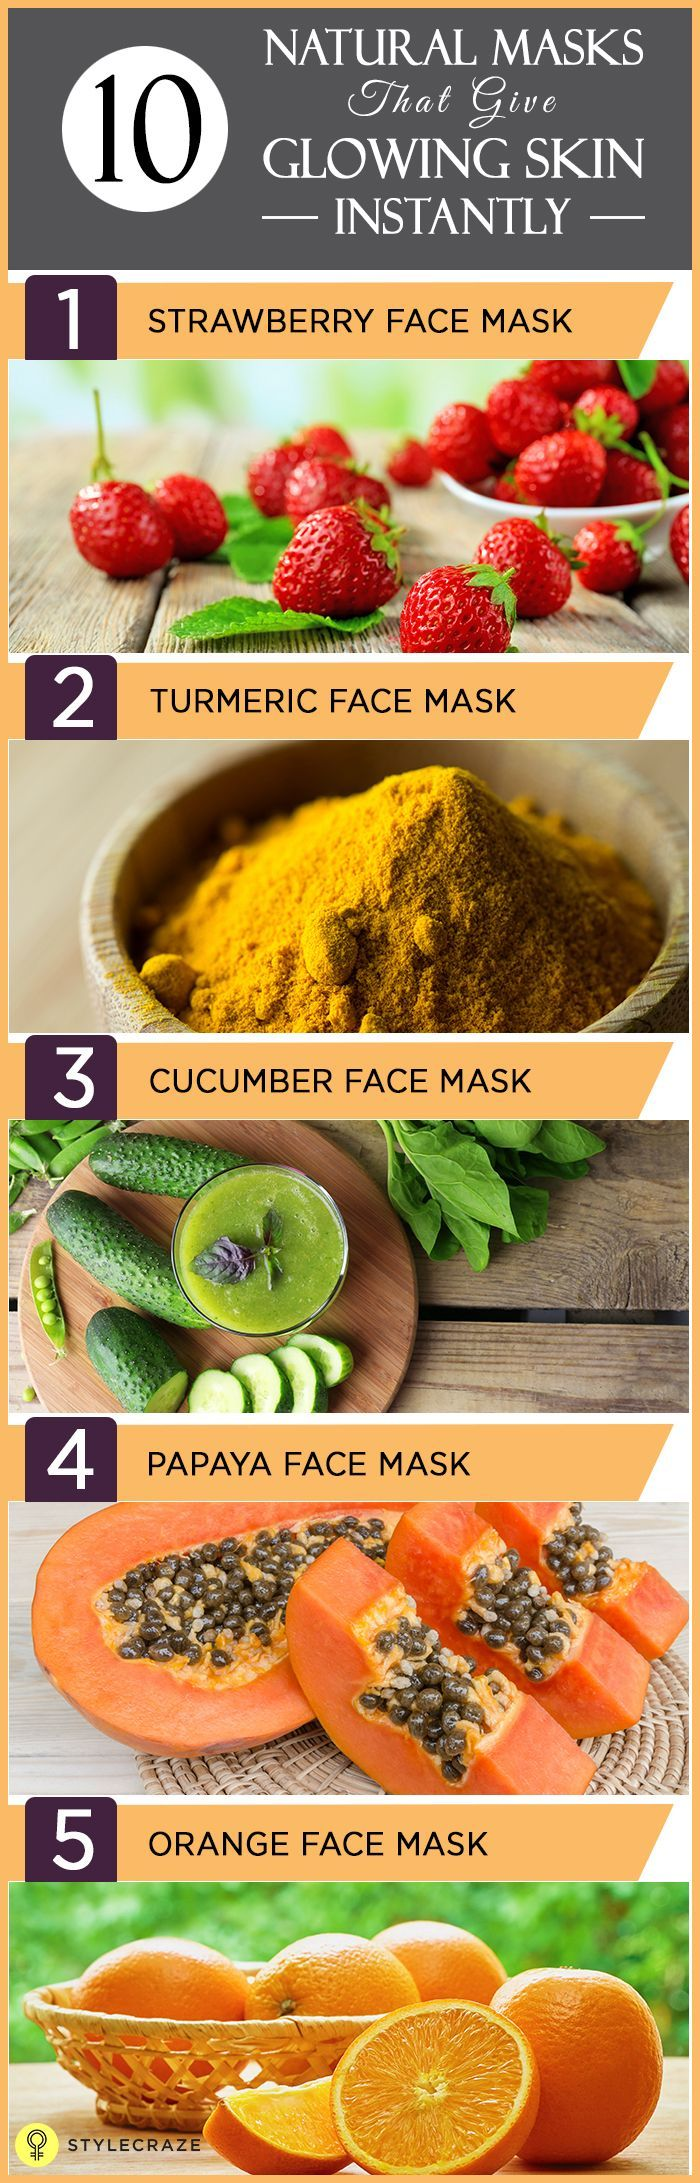 16 Top DIY Face Masks For Glowing Skin That You Can Make At Home